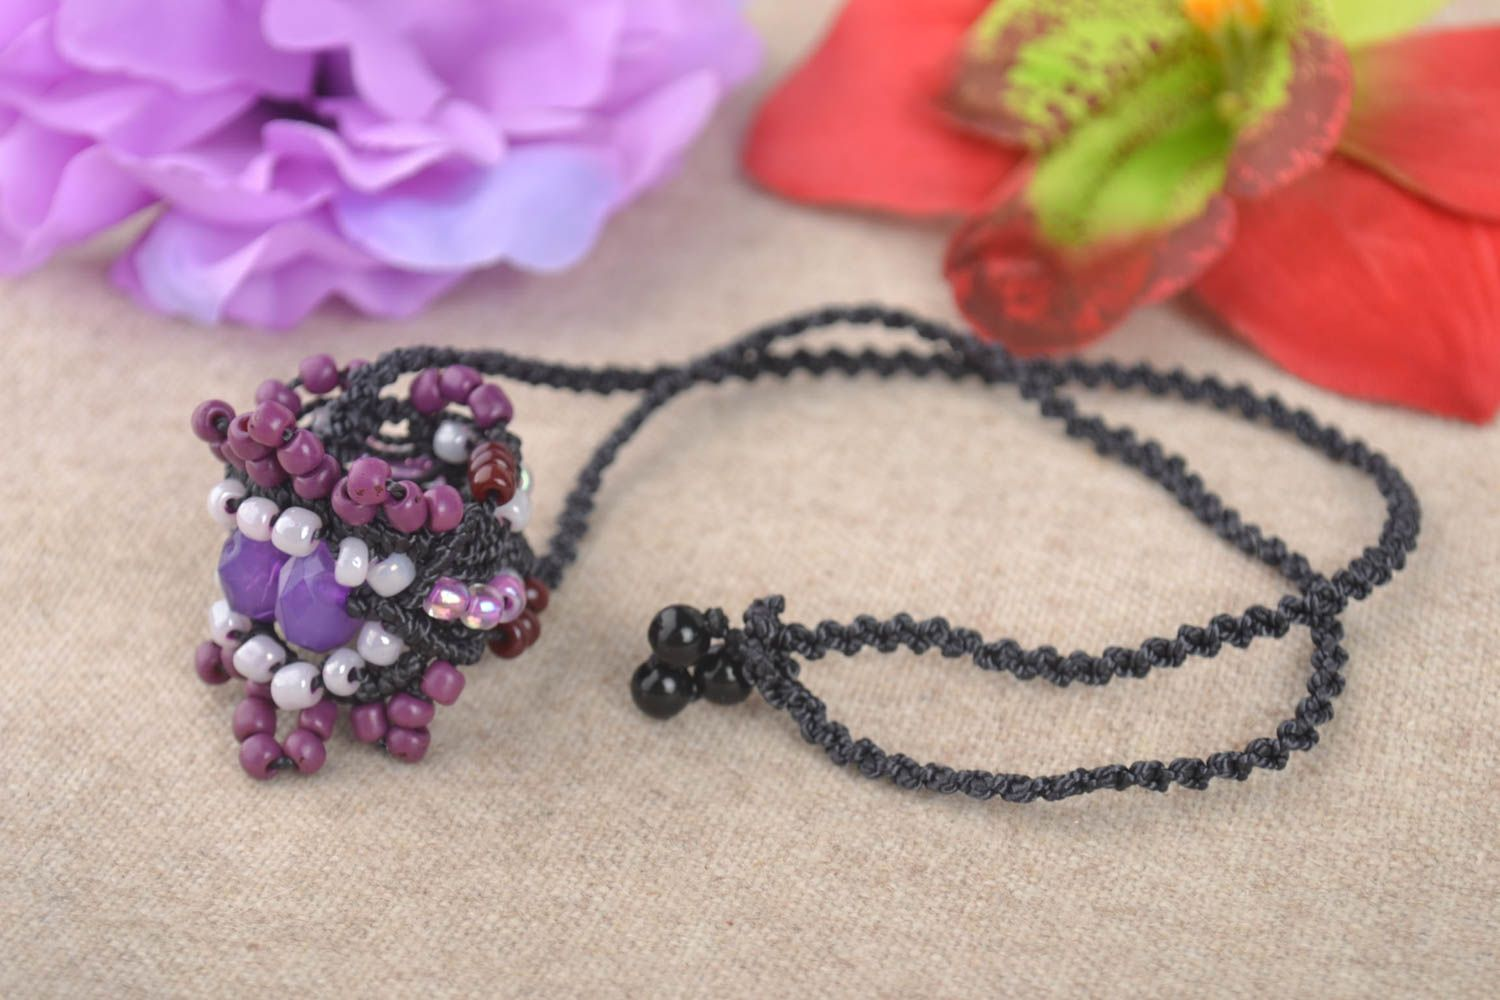 Macrame necklace handmade necklace homemade jewelry women accessories gift ideas photo 1